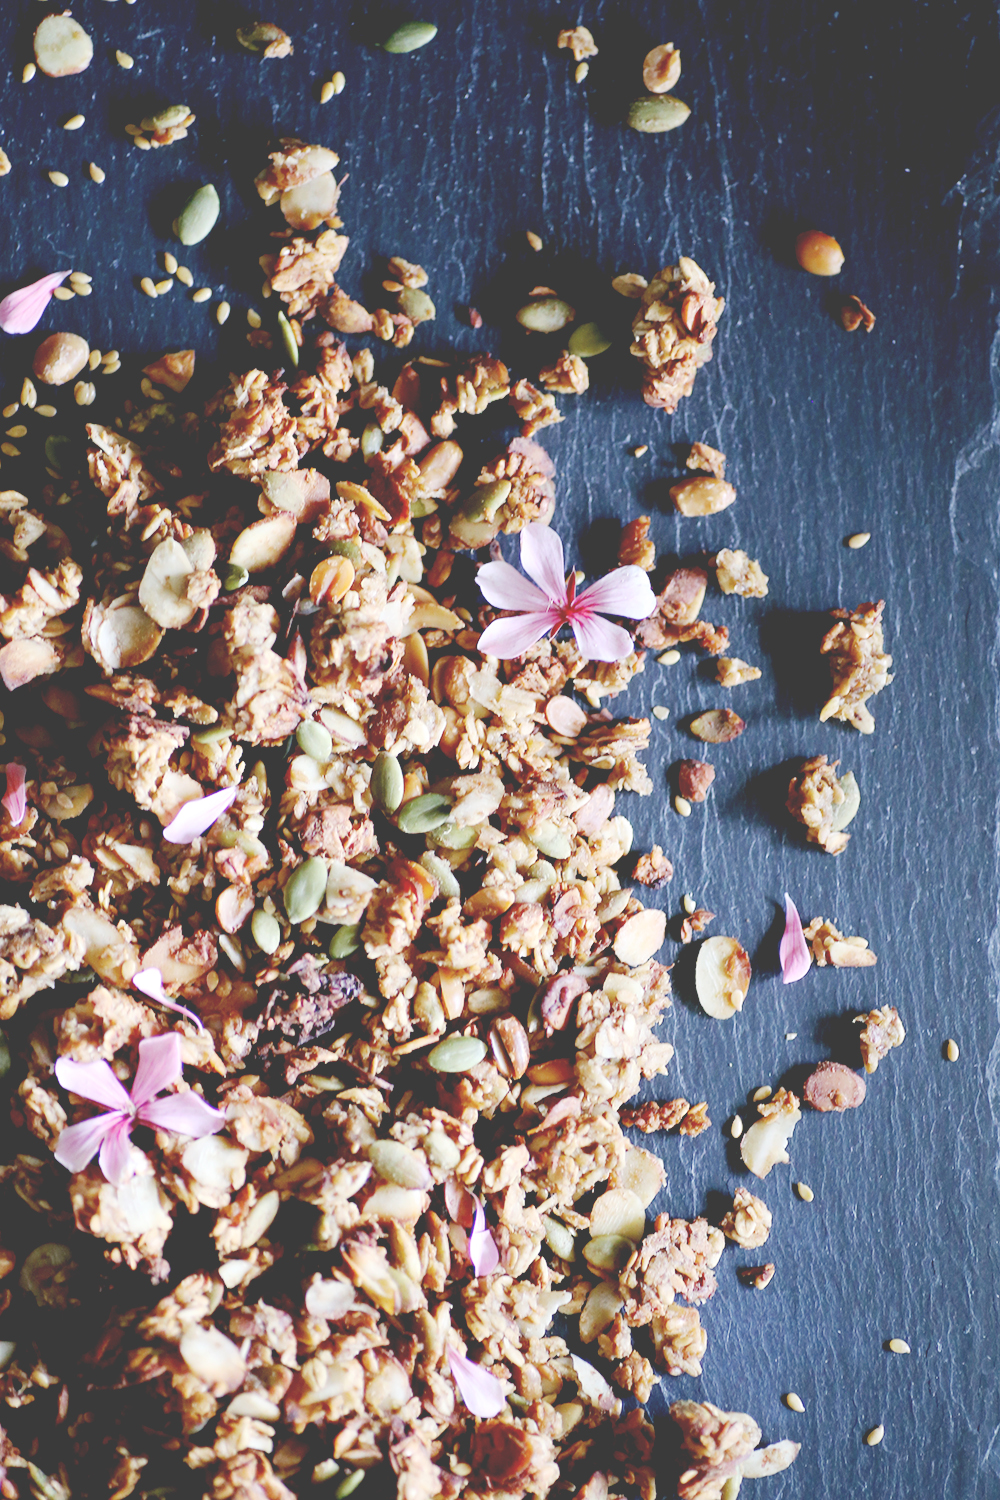 Naturally sweetened with dates, this homemade granola with almonds and pumpkin seeds is vegan, low in sugar and super satisfying. It will keep you reaching for more and more.